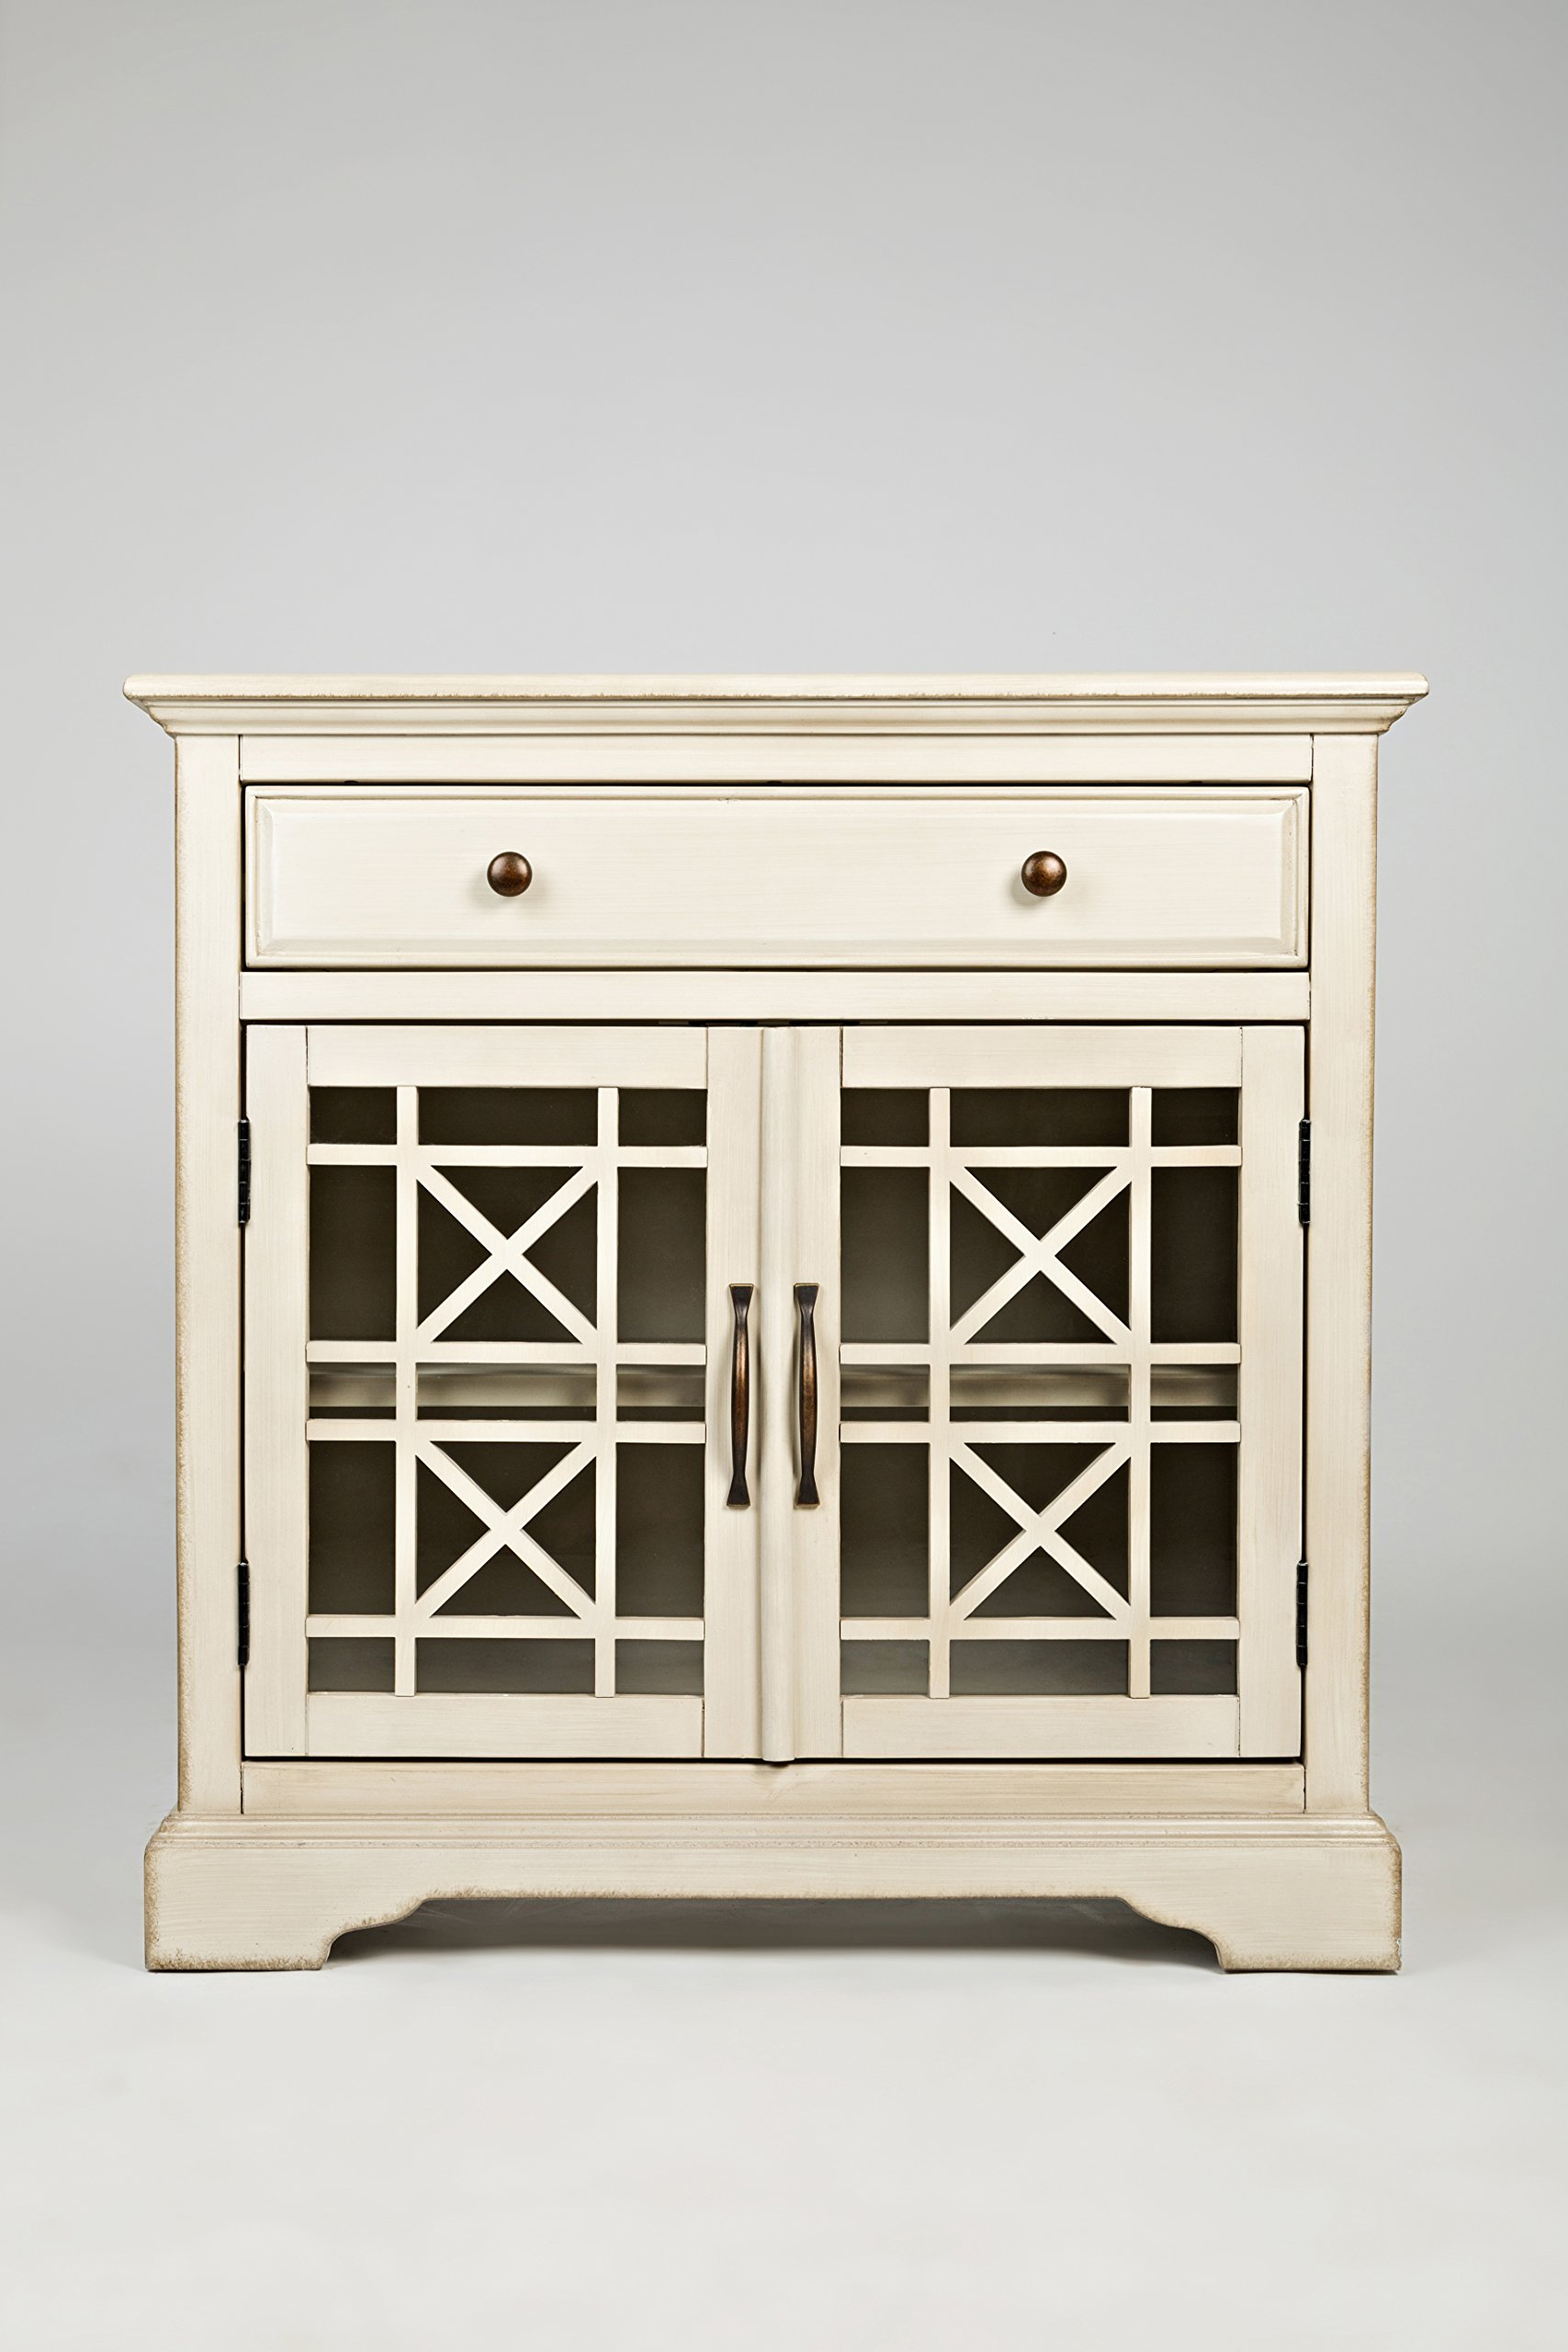 "Jofran: , Craftsman, Accent Chest, 32""W X 15""D X 32""H, Antique Cream Finish, (Set of 1) - One Drawer Two Doors Drawer Dimensions: 26""W X 12""D X 8.75""H - dressers-bedroom-furniture, bedroom-furniture, bedroom - 81Cb9rJswAL -"